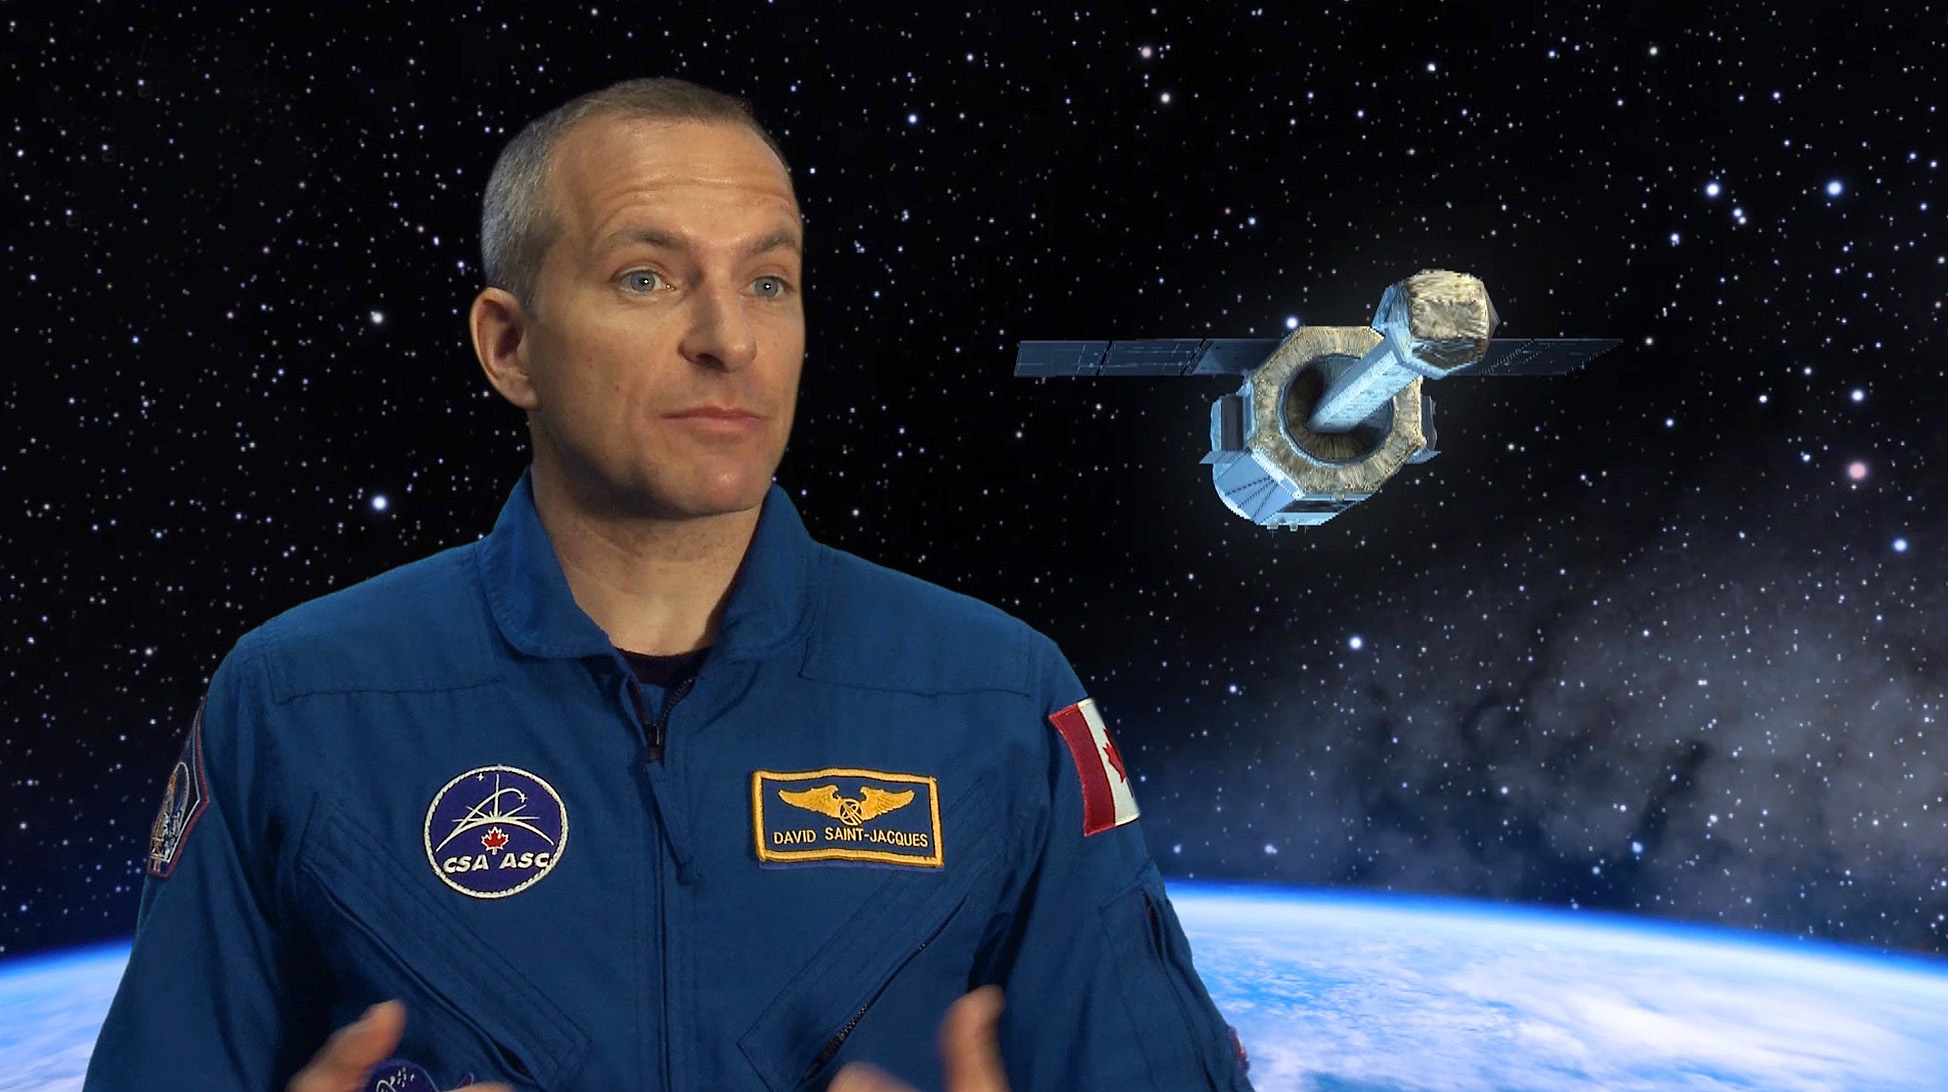 L'astronaute David Saint-Jacques explique la mission ASTRO-H